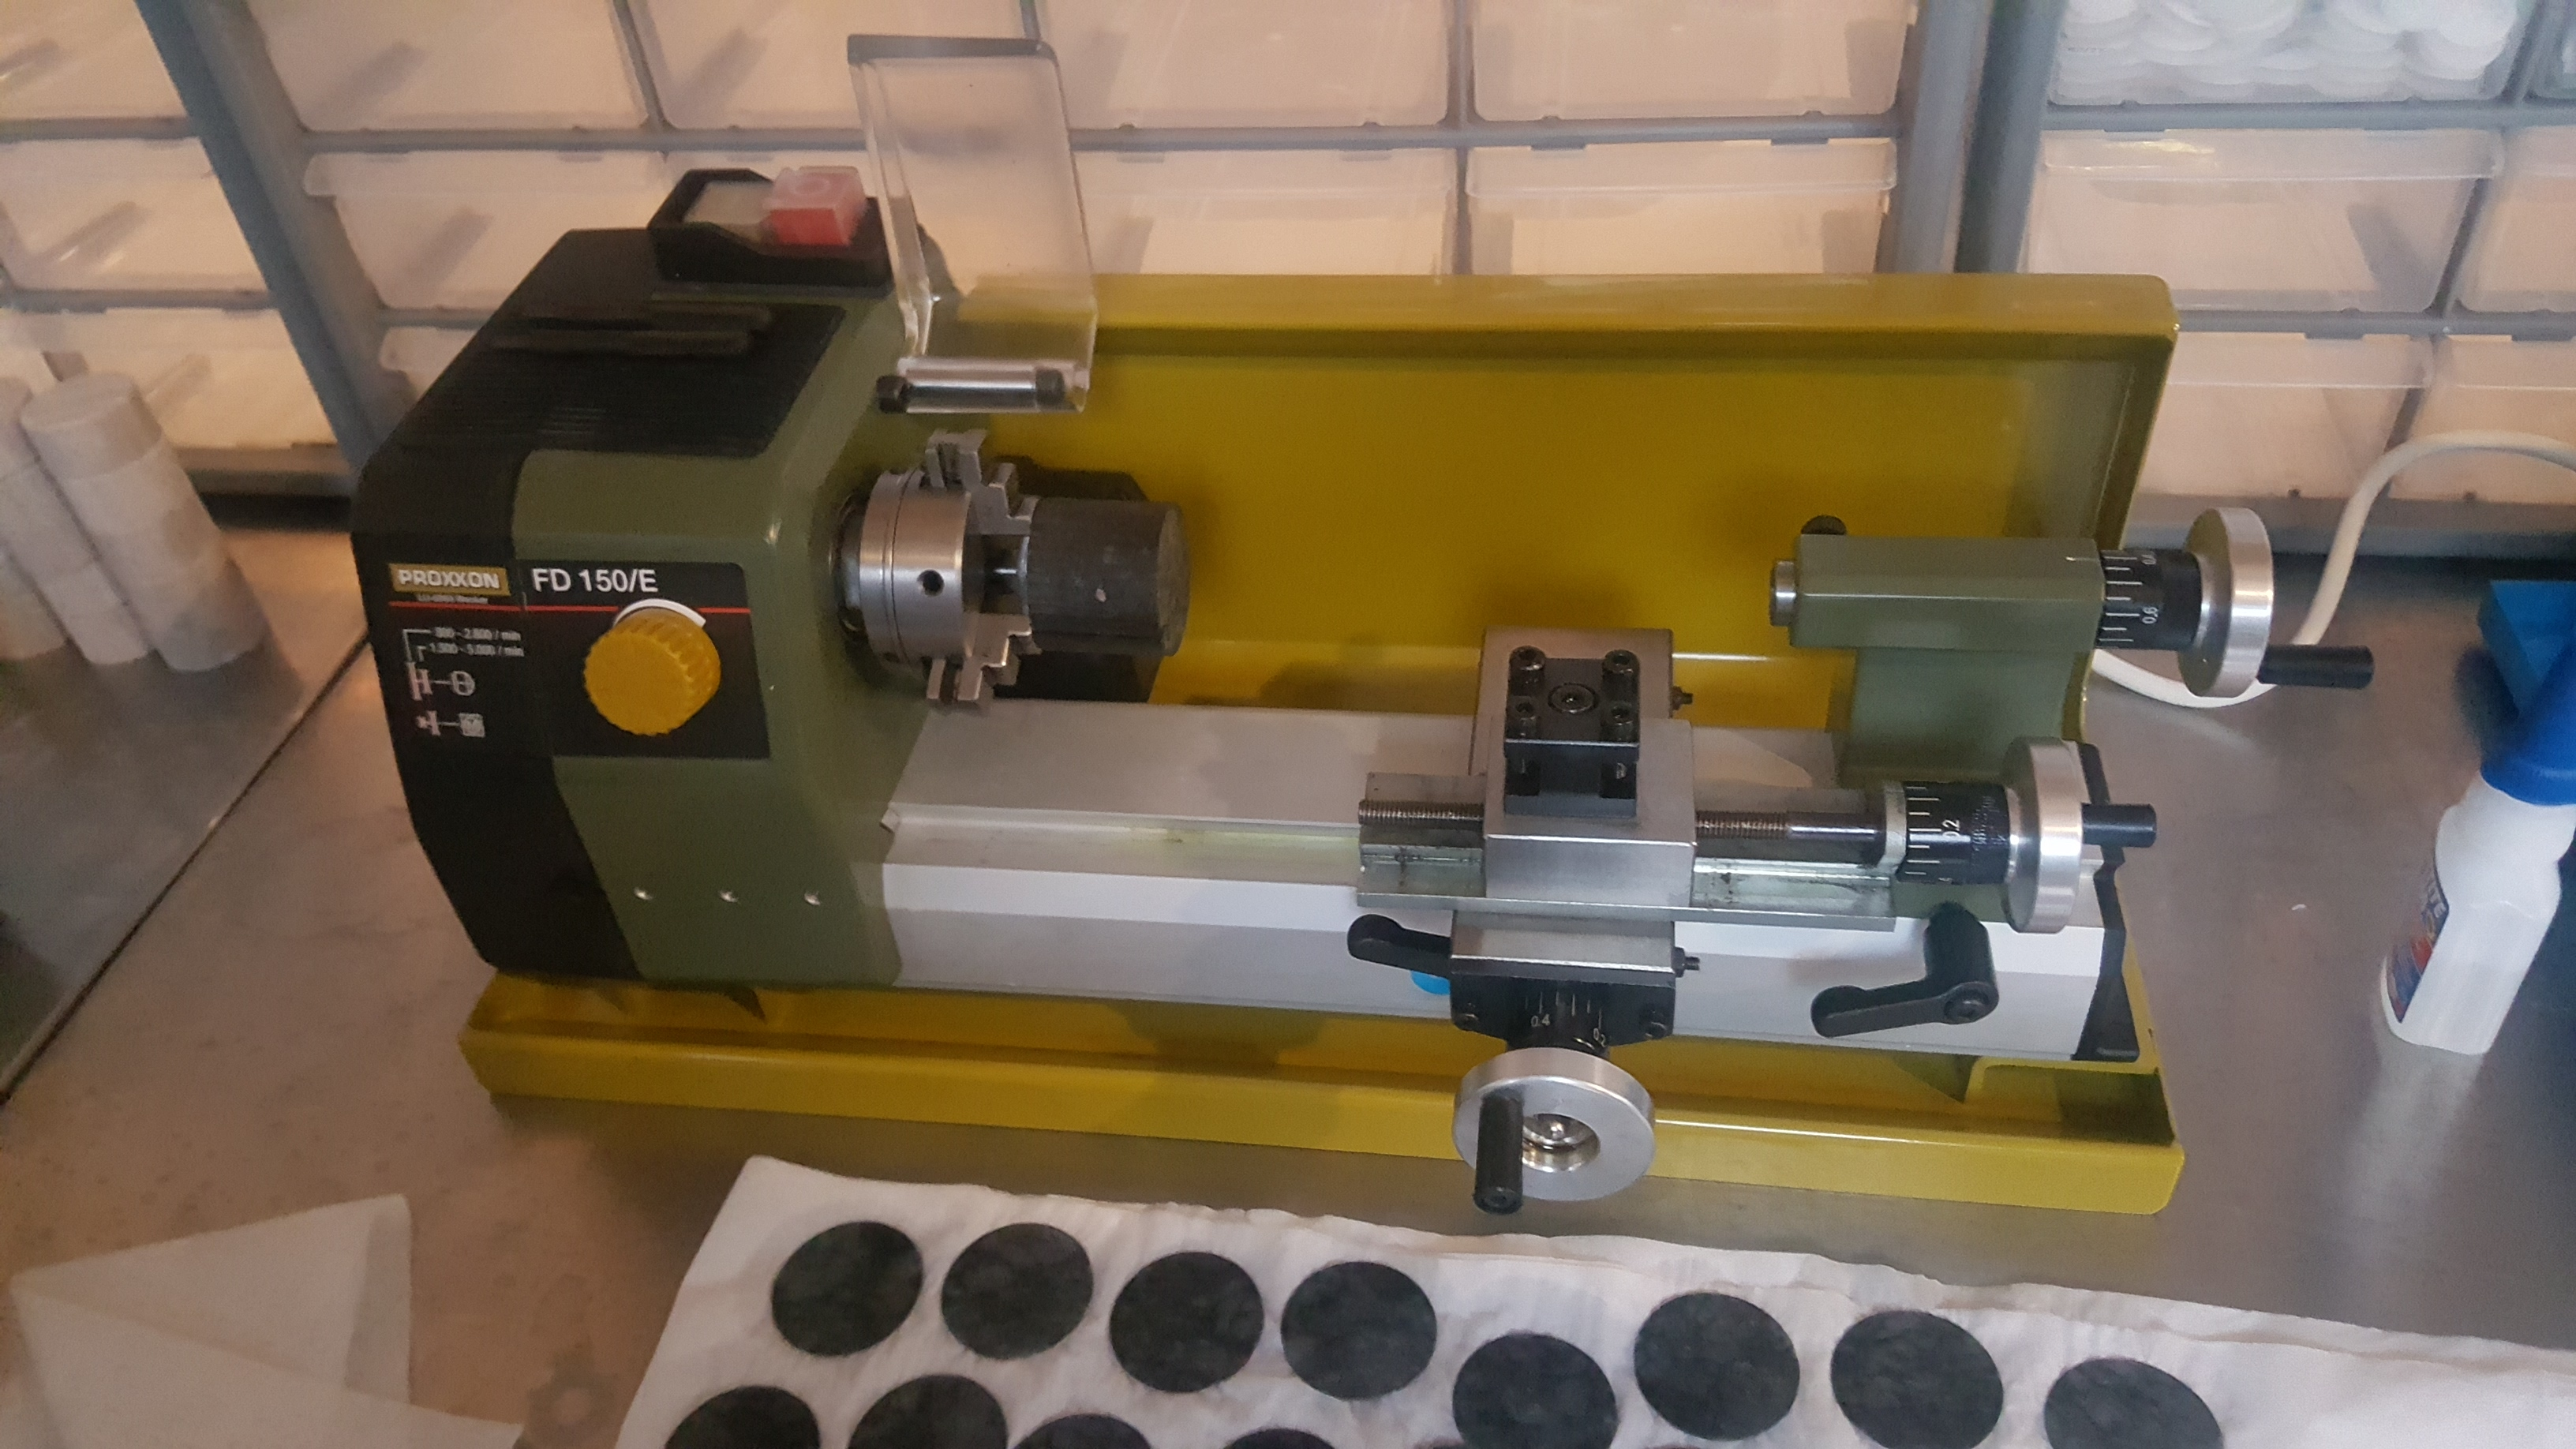 New mini metal lathe for the space - too small - Discussion